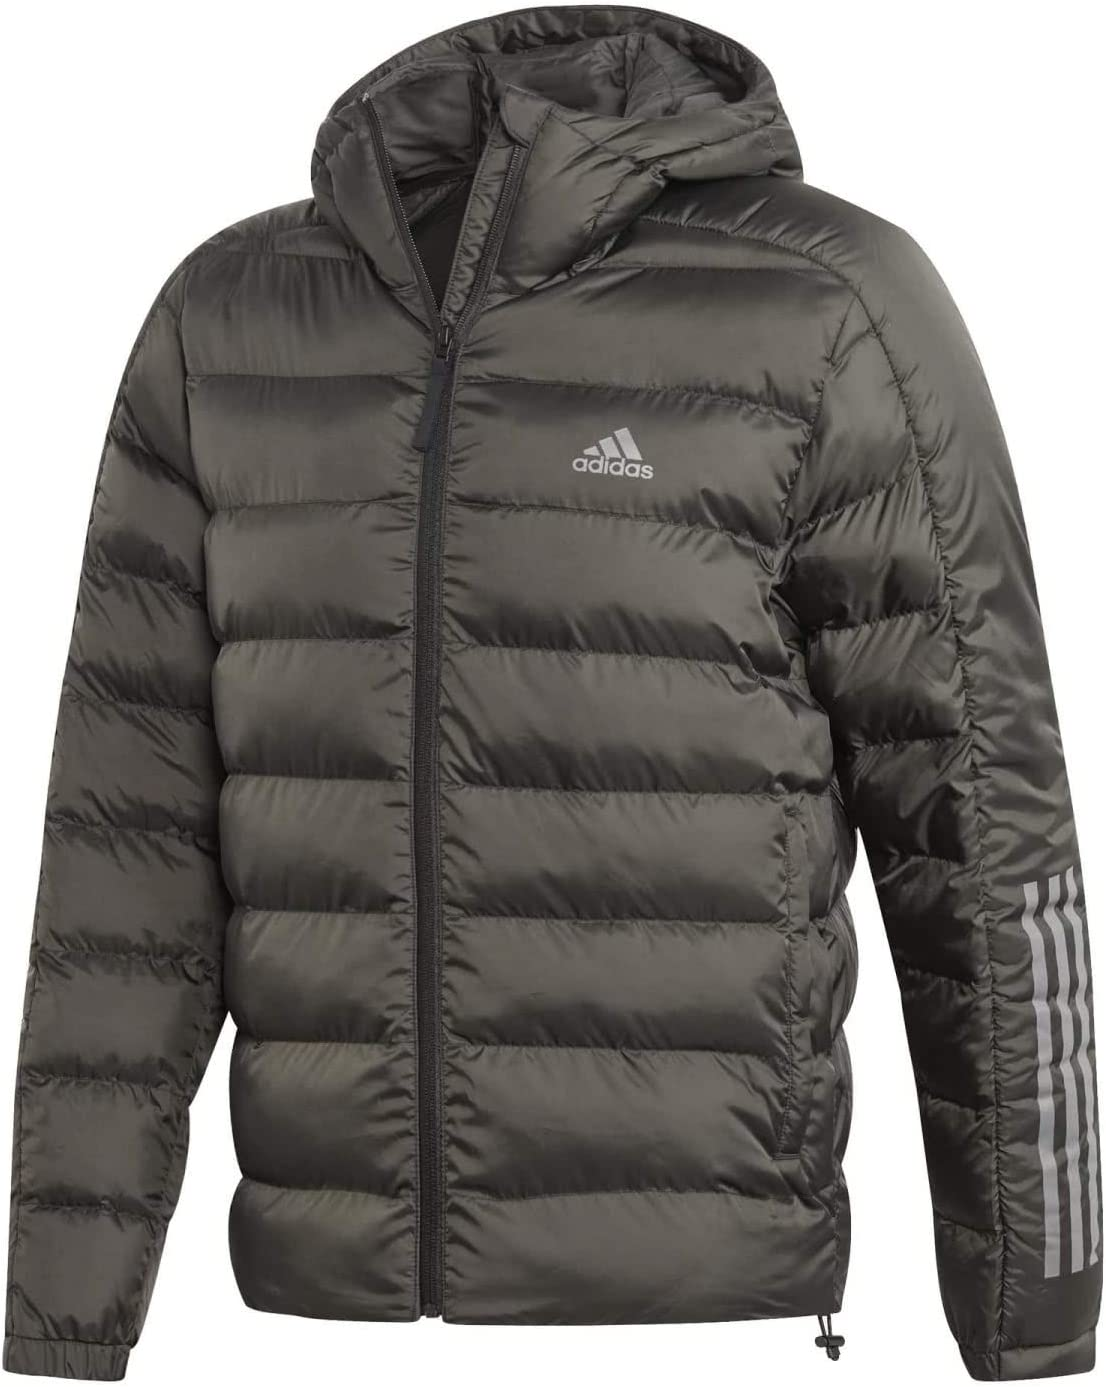 adidas itavic 3-stripes 2.0 jacke black